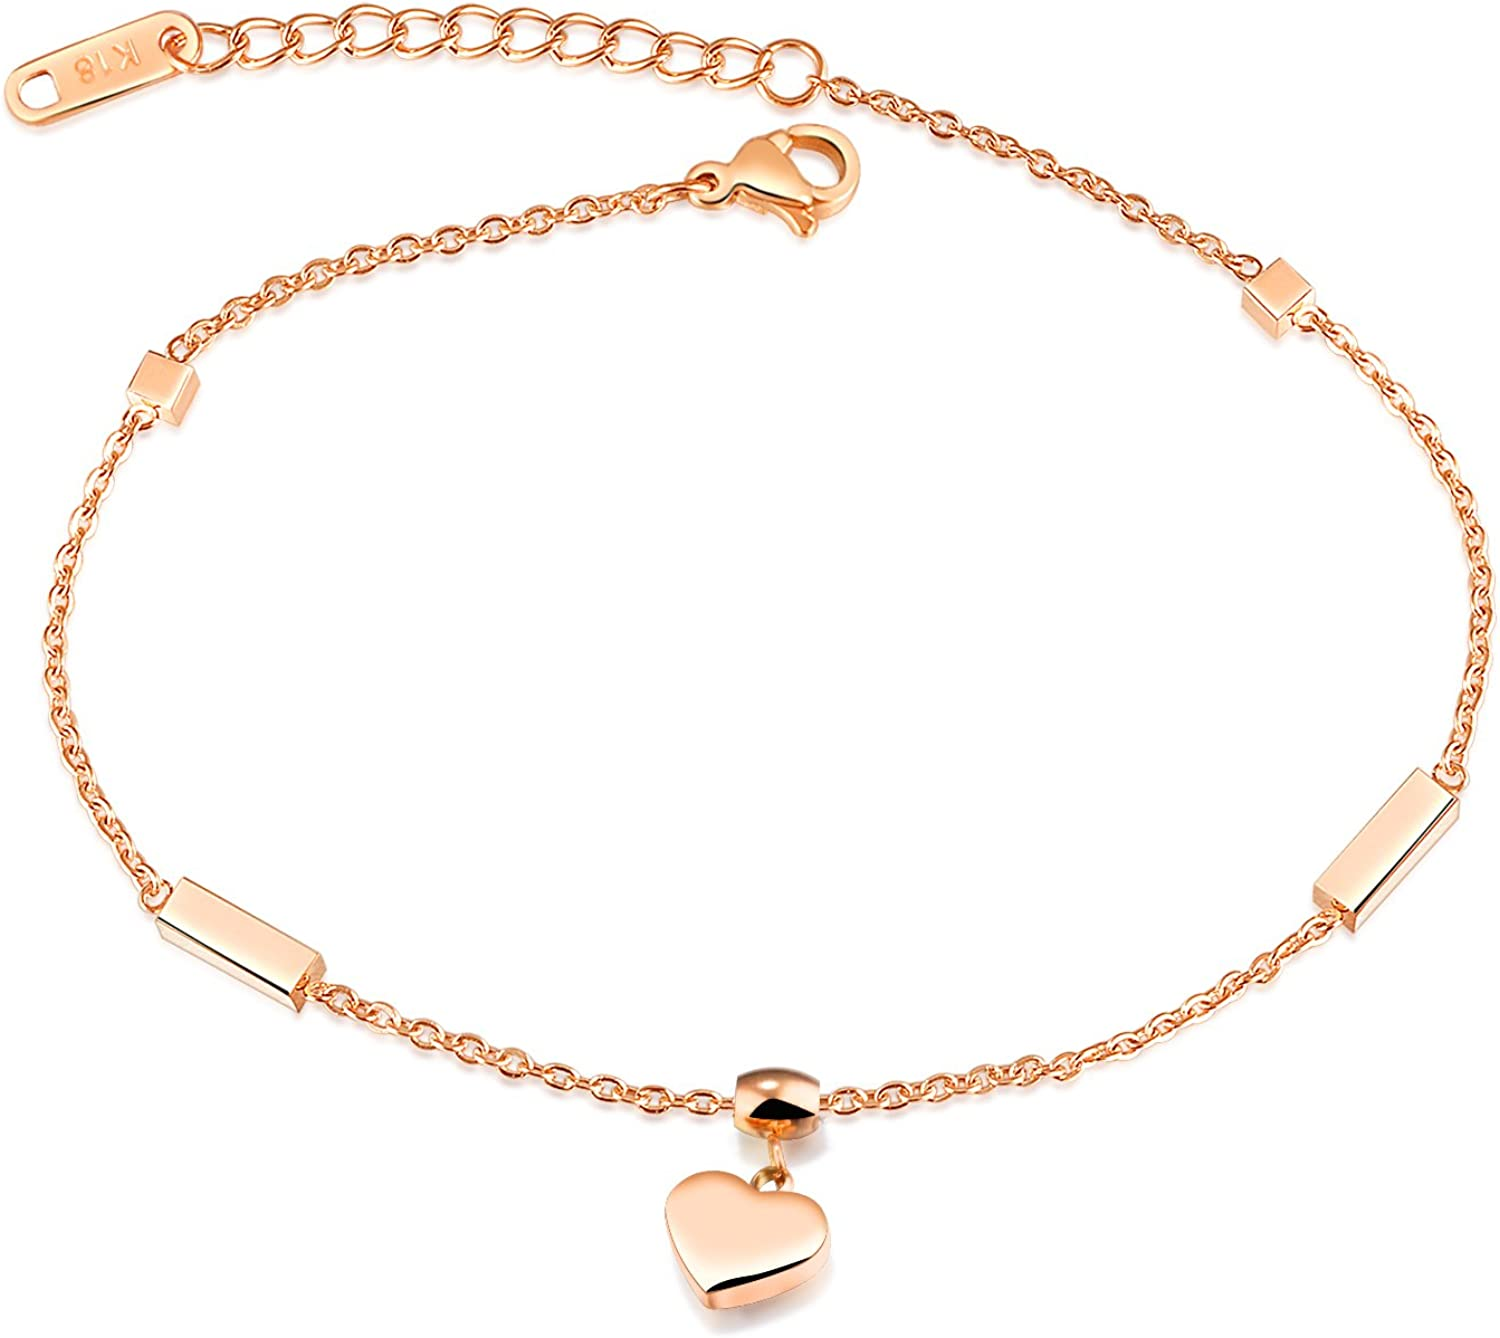 Gutcandie Ladies Roseold Stainless Steel Love Heart Pendant Anklet Ankle Chain Summer Beach Foot Jewellery for Women Girls